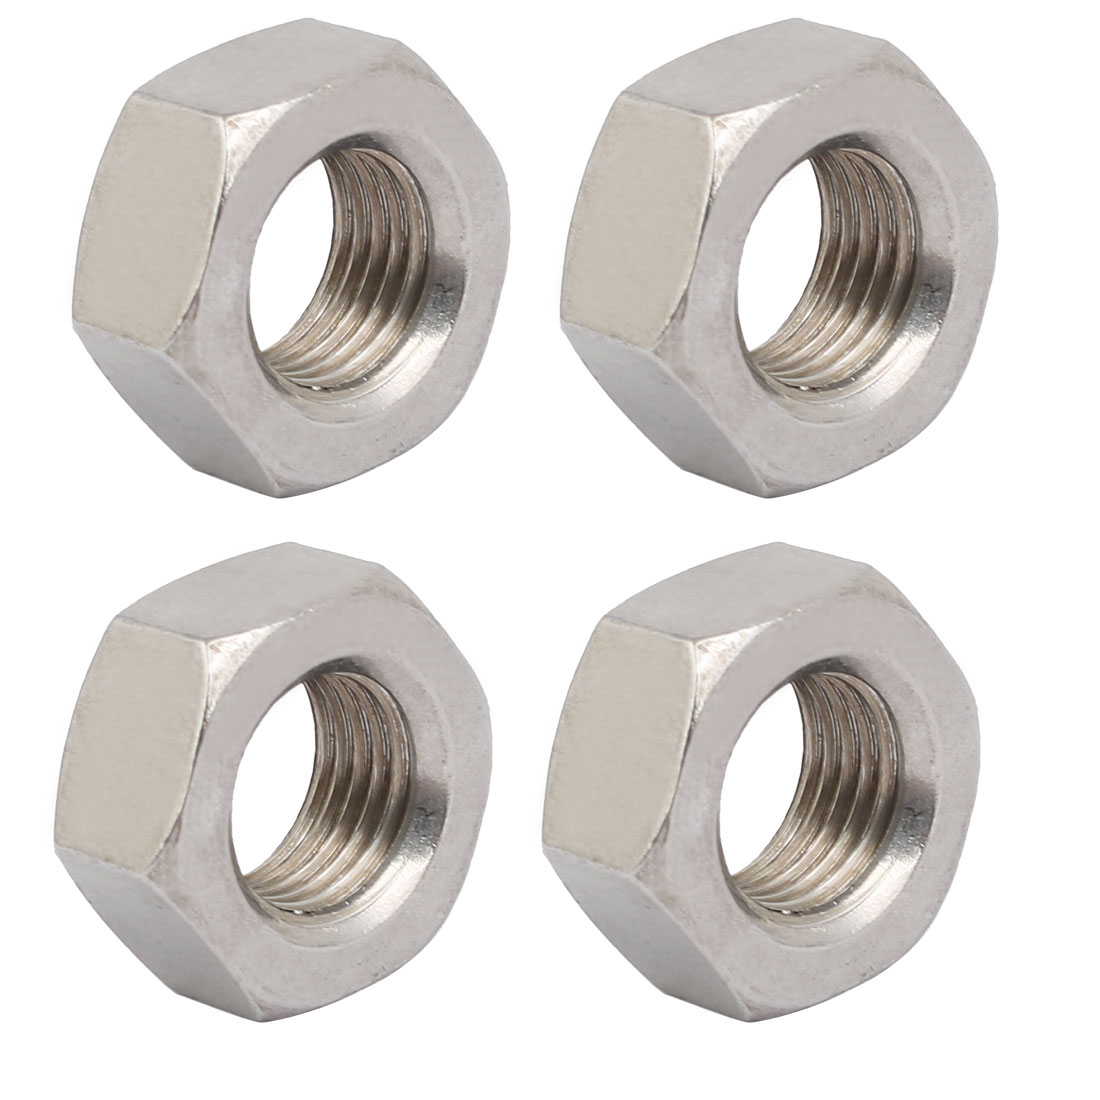 4pcs M14 x 1.5mm Pitch Metric Fine Thread 304 Stainless Steel Hex Nuts